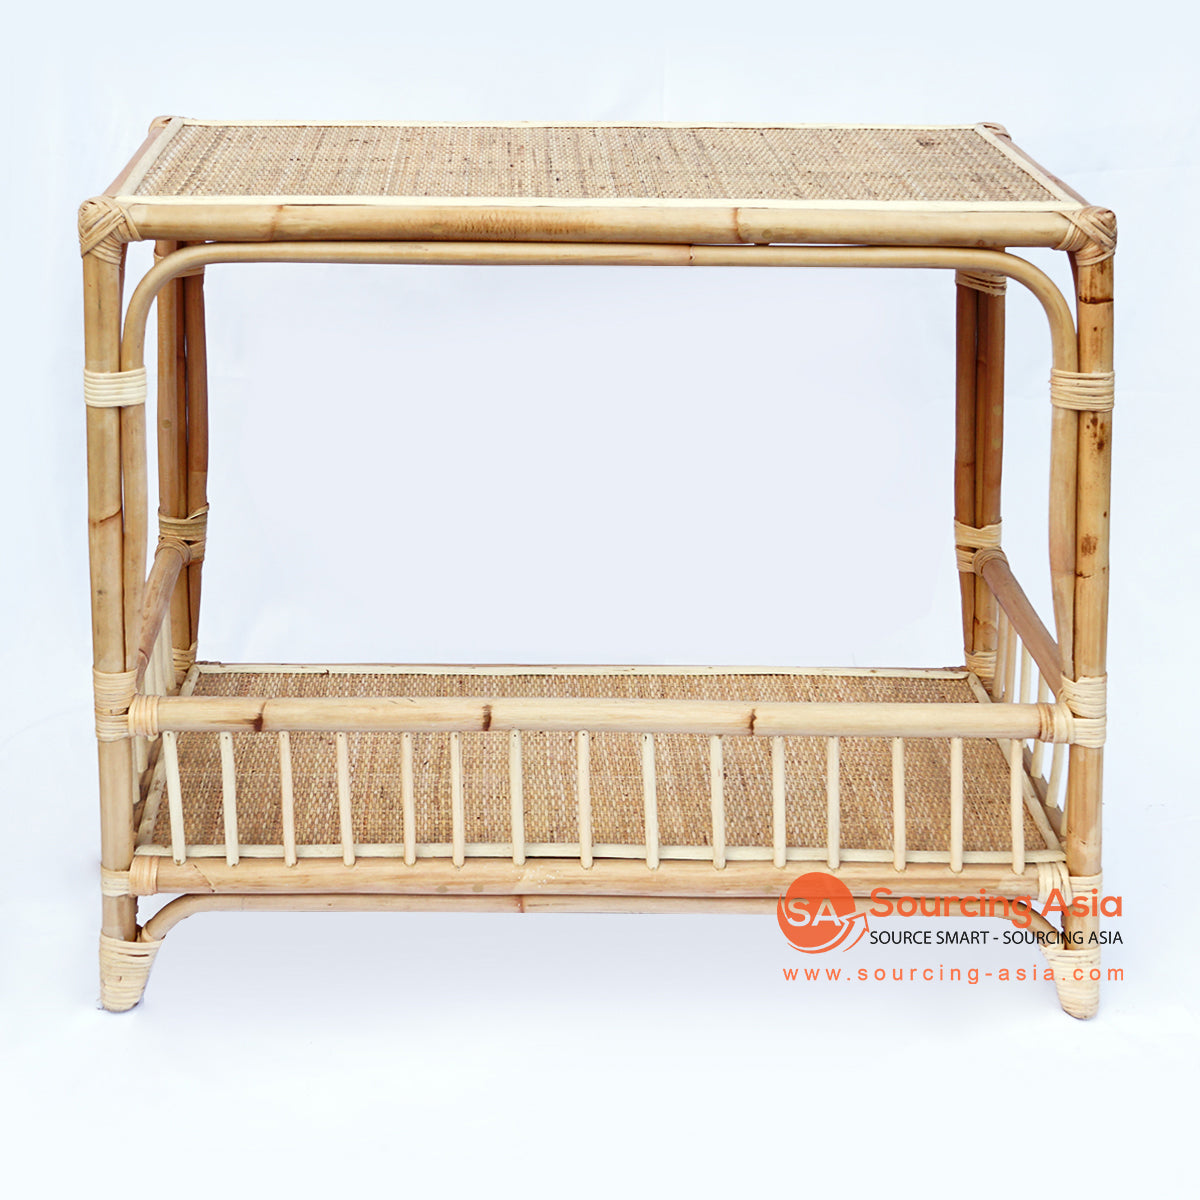 BNTC014 RATTAN SIDE TABLE